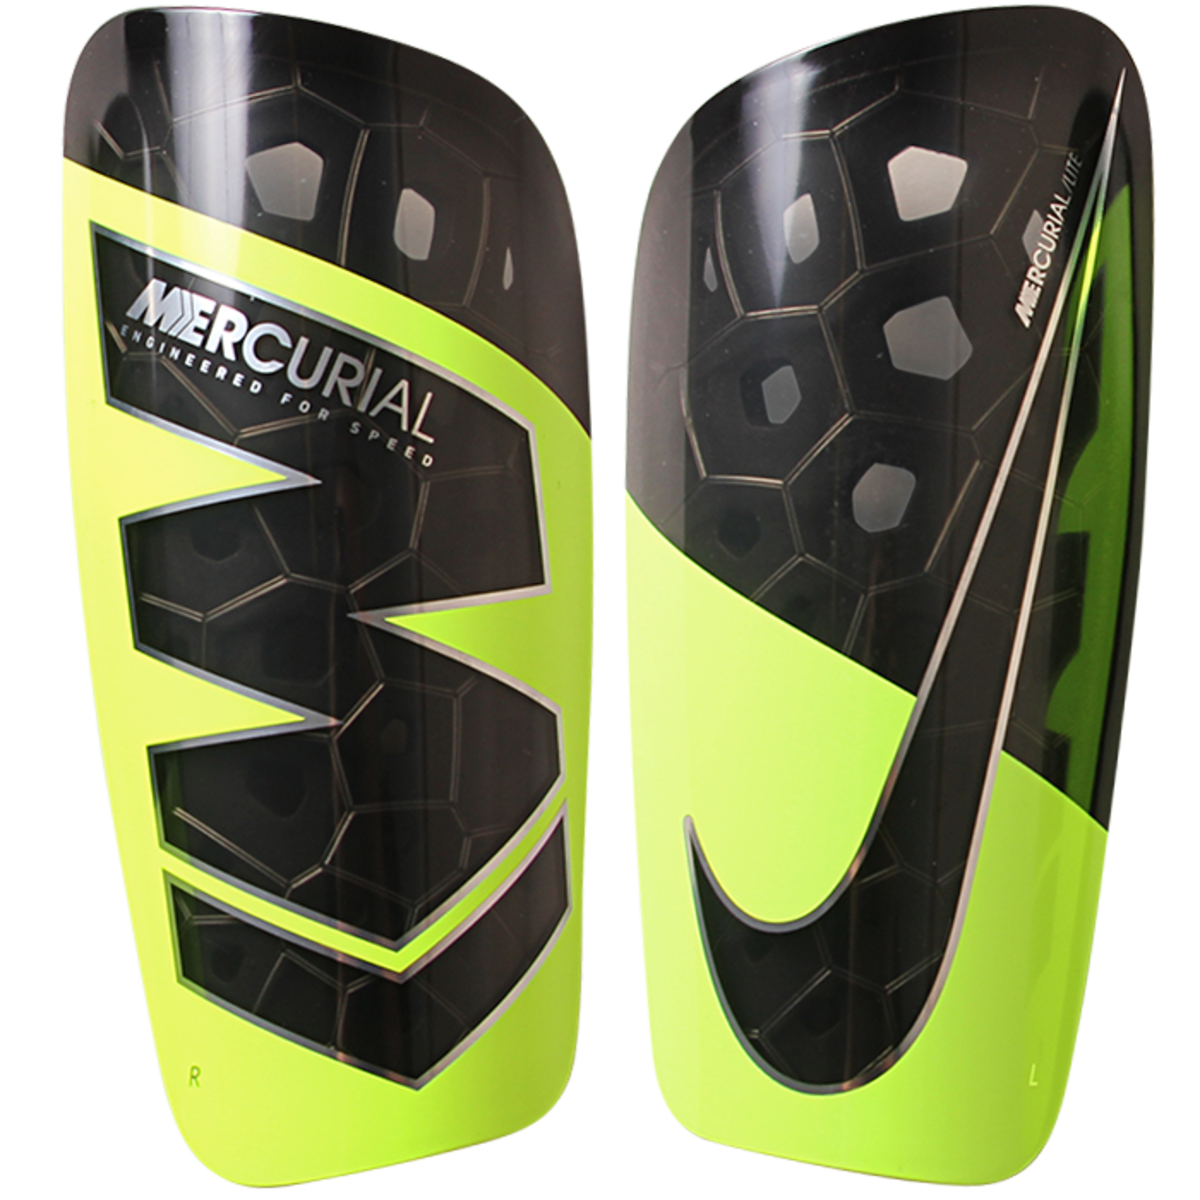 Nike - Mercurial Lite Benskinner 'Always Forward' - Neon thumbnail